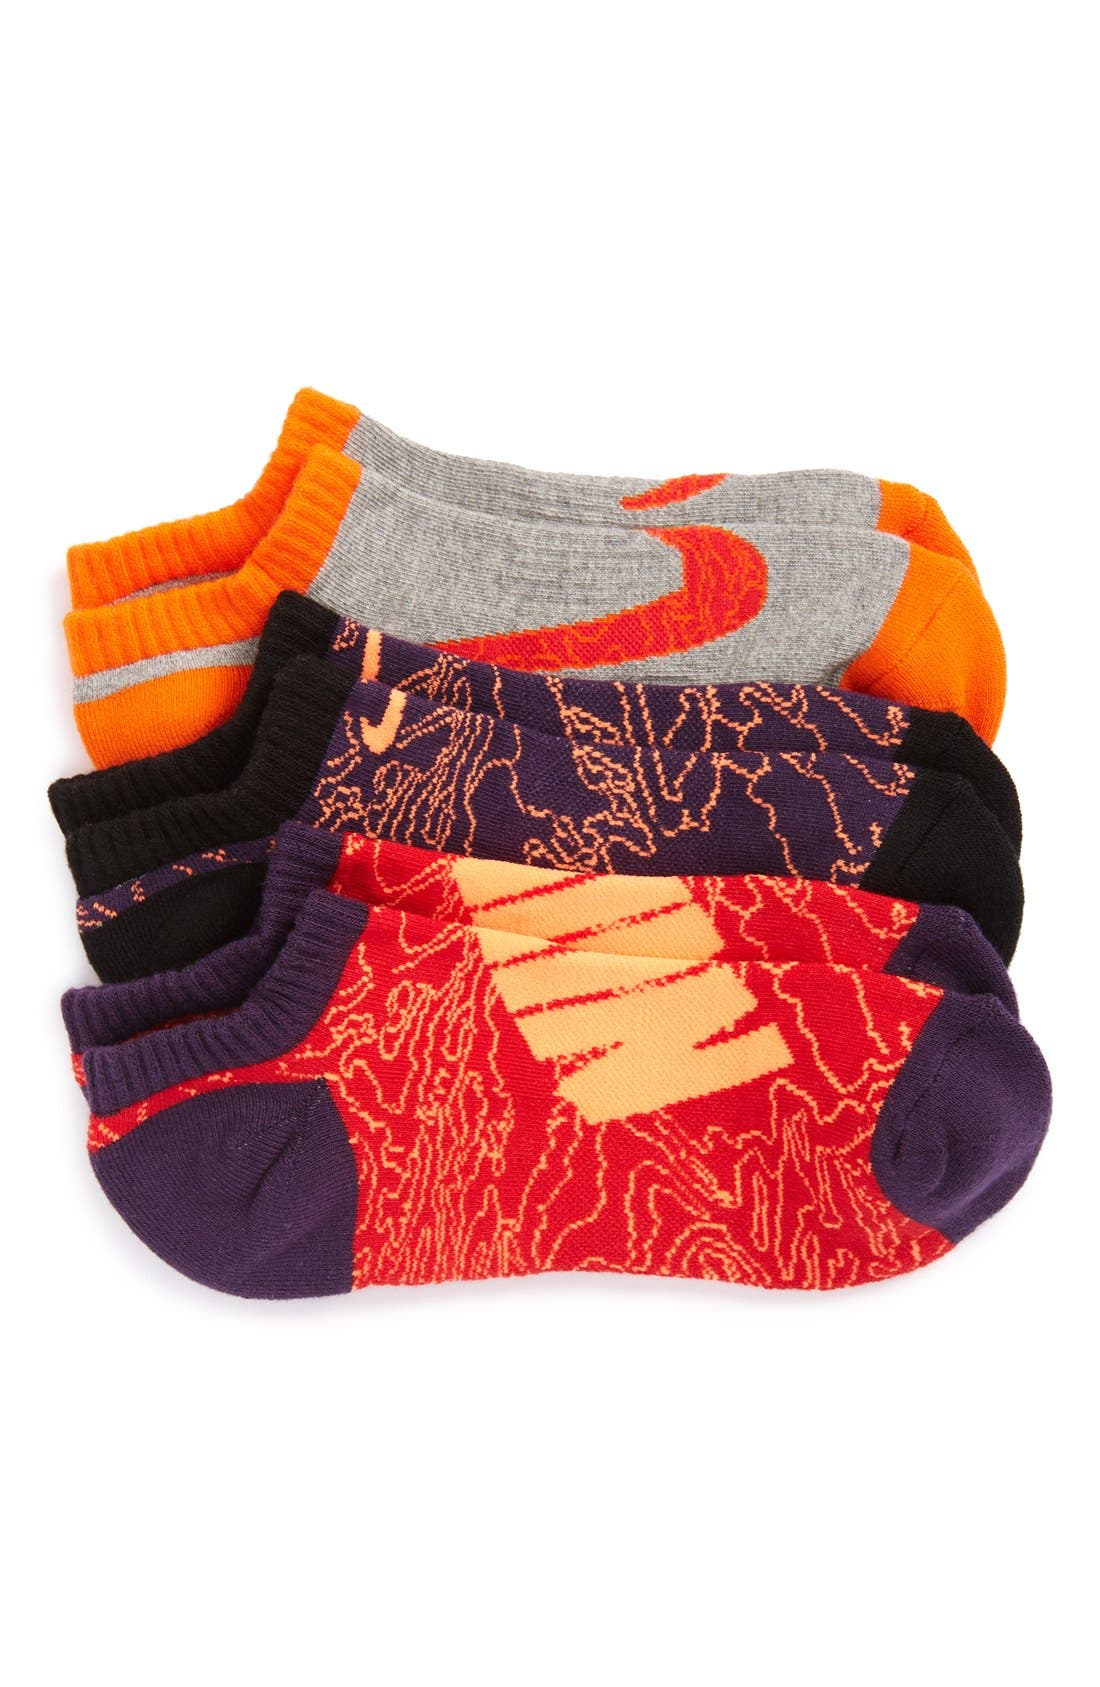 Nike Performance 3-Pack No-Show Socks (Walker, Toddler, Little Kid & Big Kid)